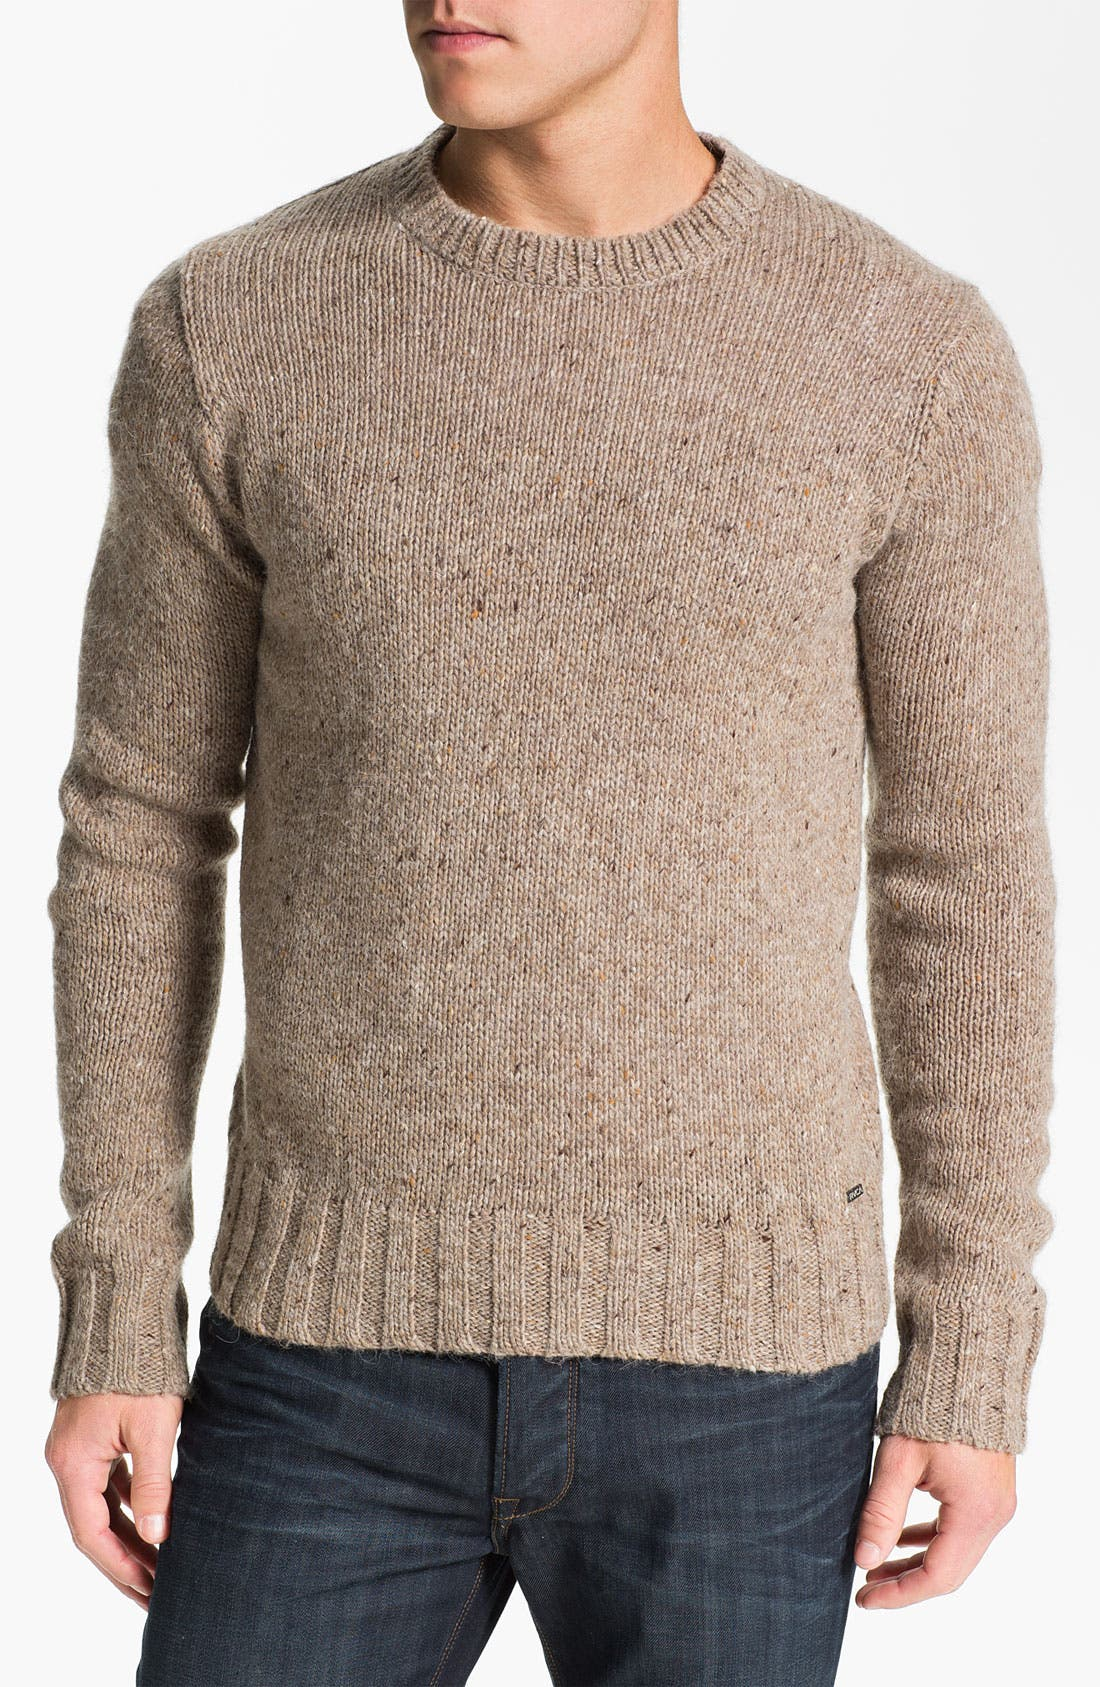 Alternate Image 1 Selected - RVCA 'Ahab' Crewneck Sweater